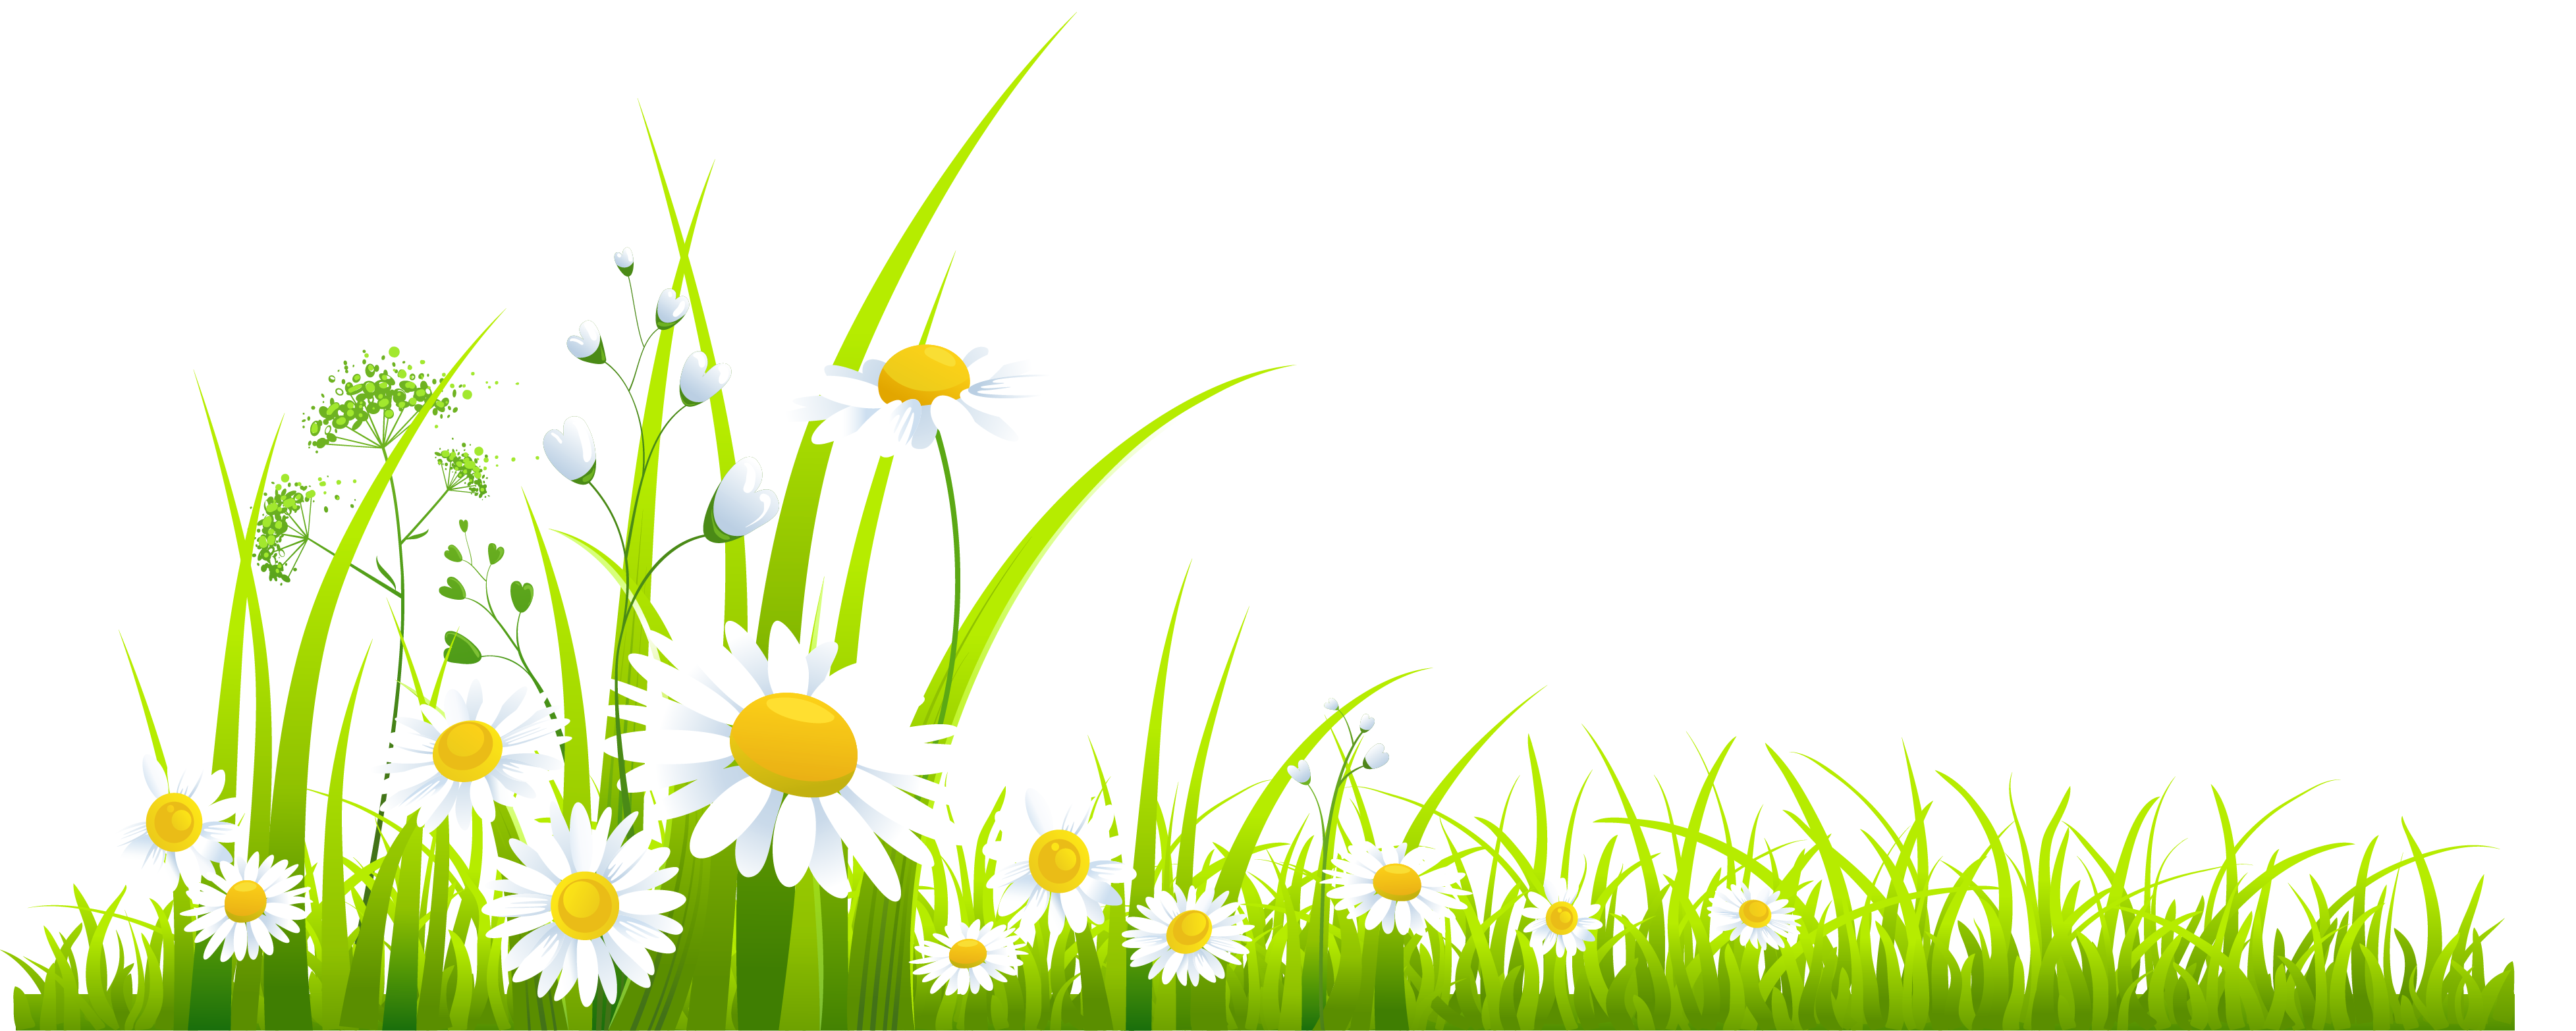 Clipart children nature. Spring on free images